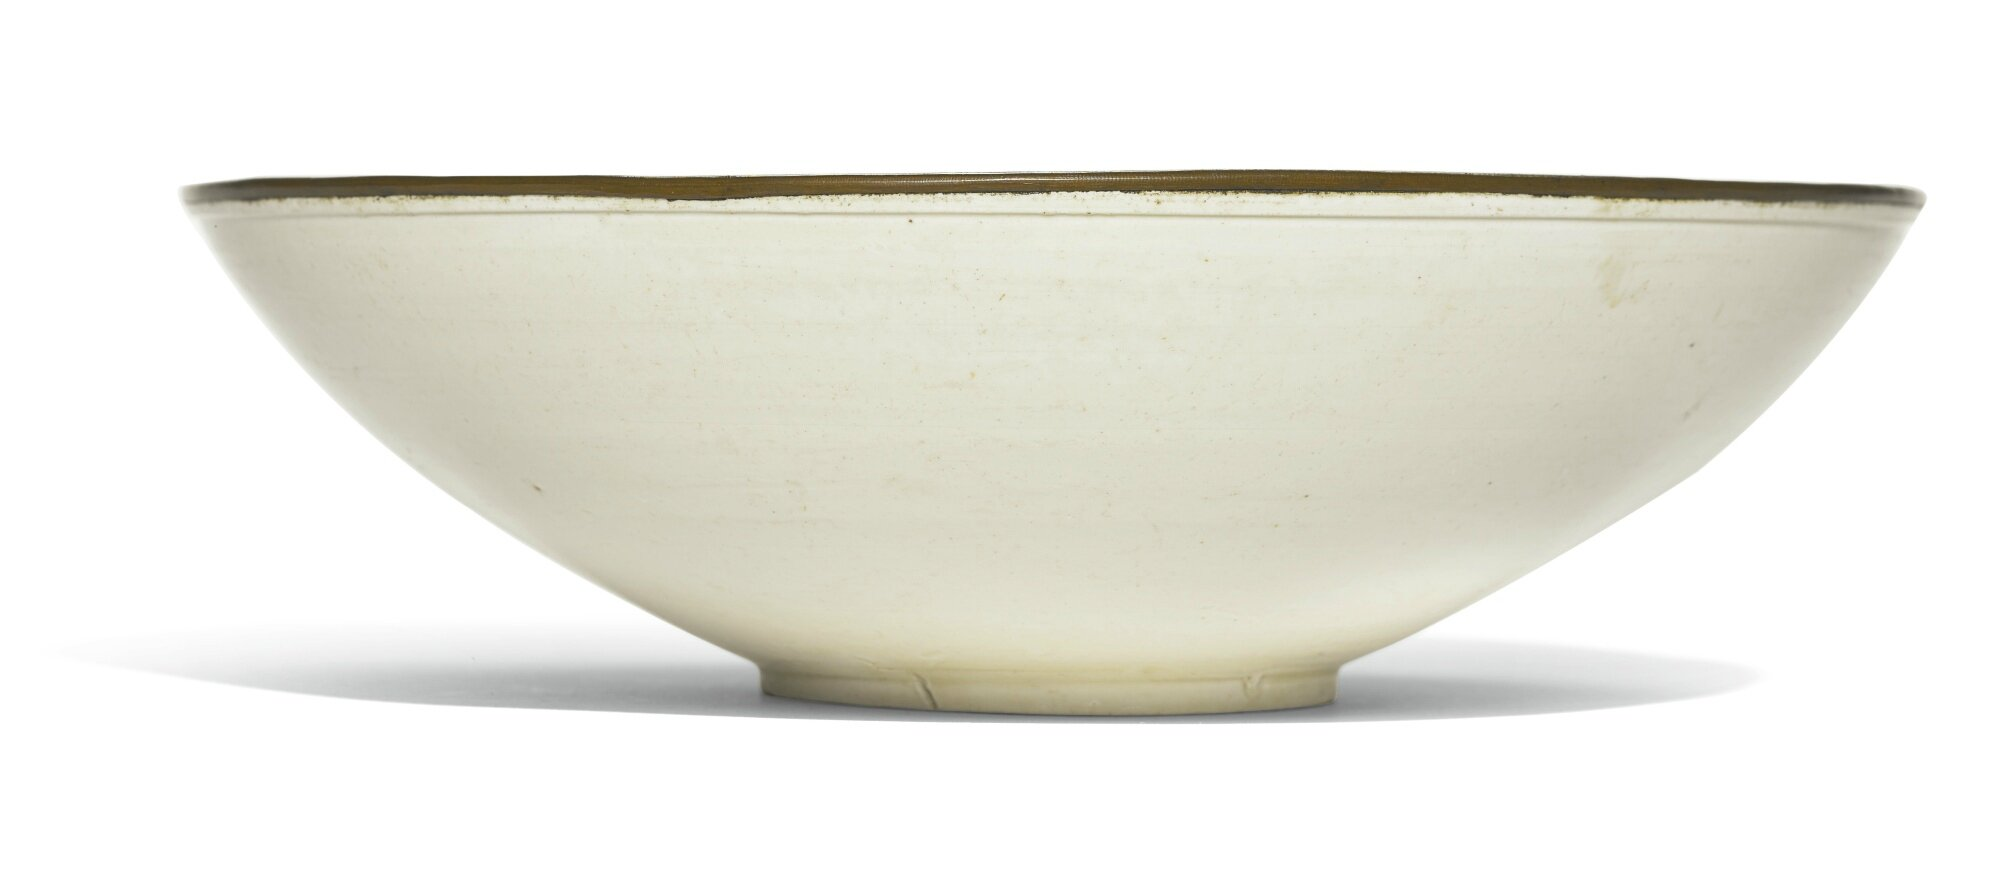 A 'Ding' 'twin fish' bowl, Song dynasty